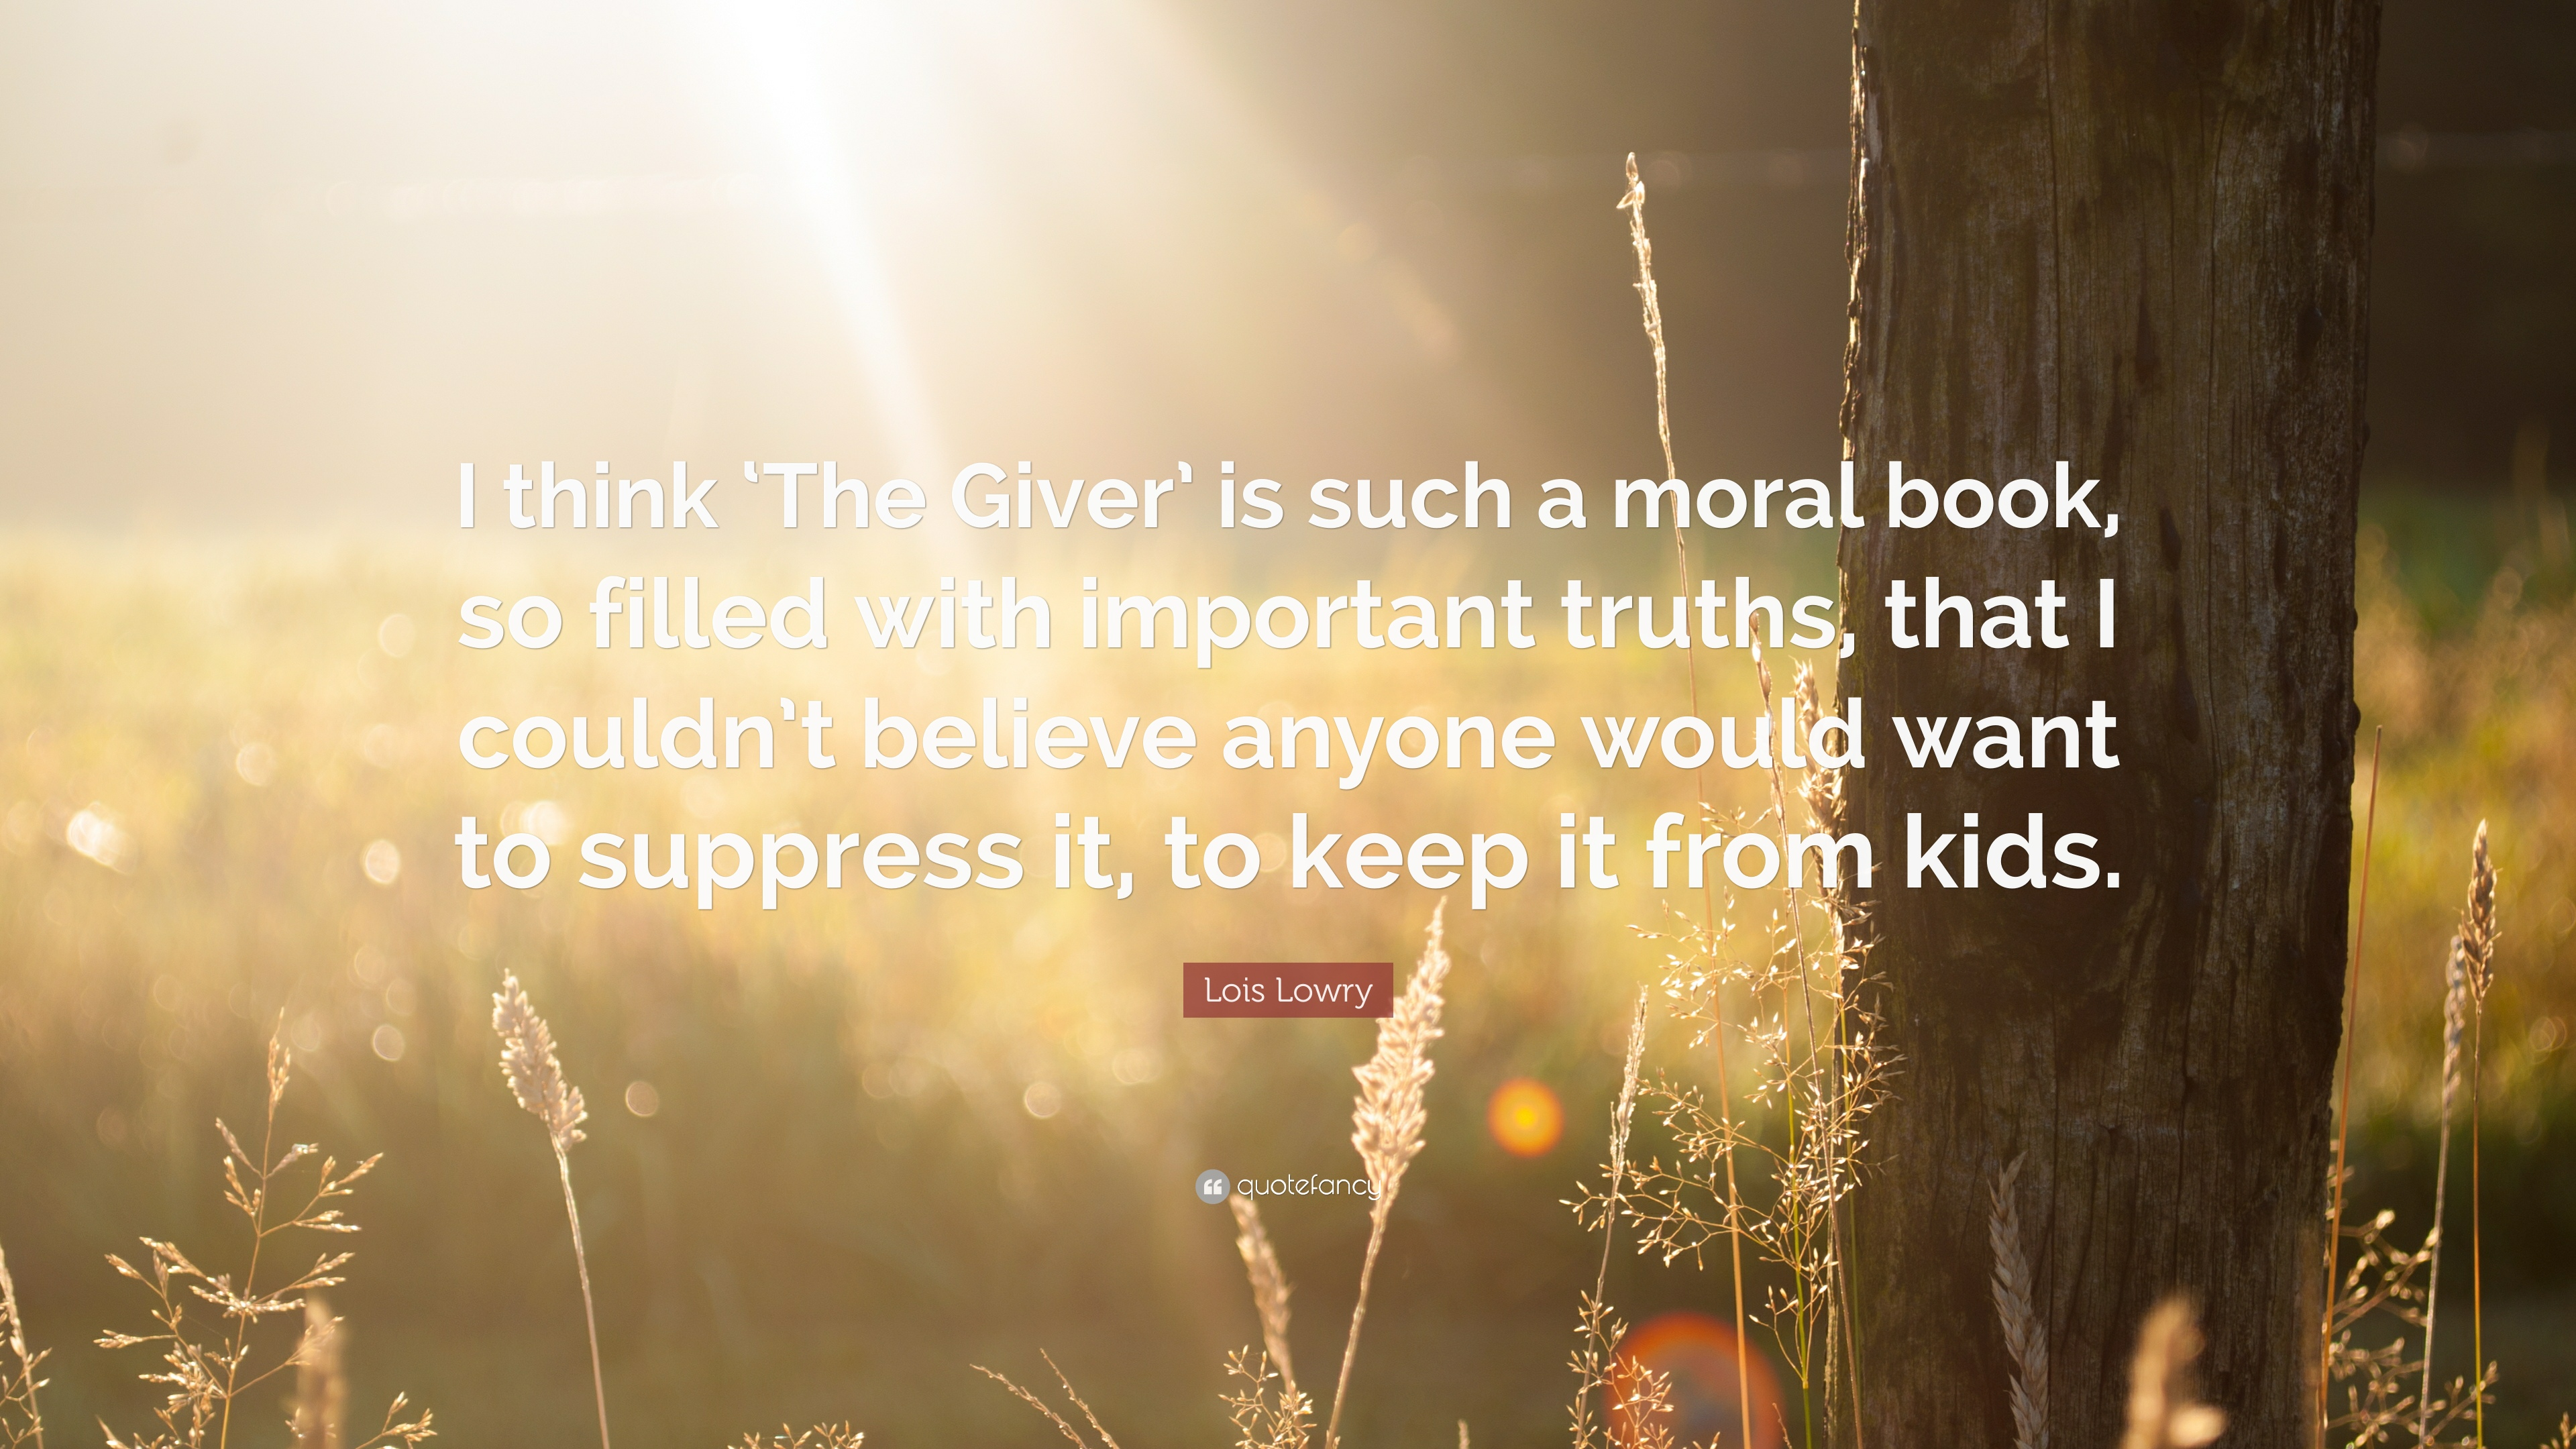 What was the moral in The Giver?